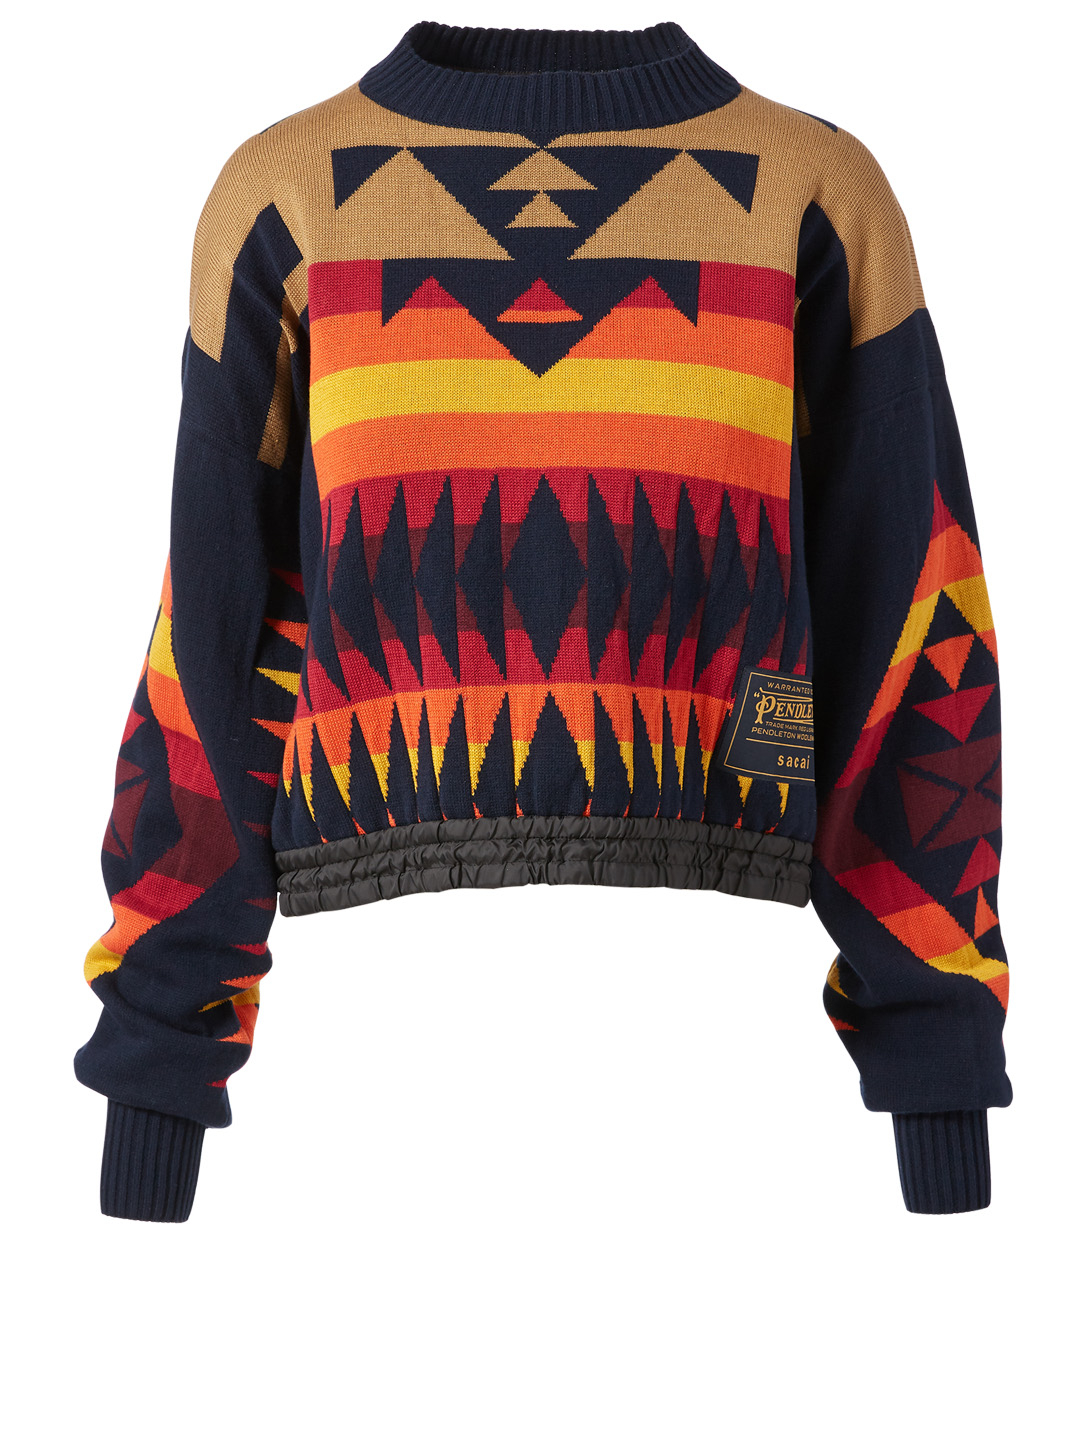 SACAI Sacai x Pendleton Printed Sweater Women's Blue